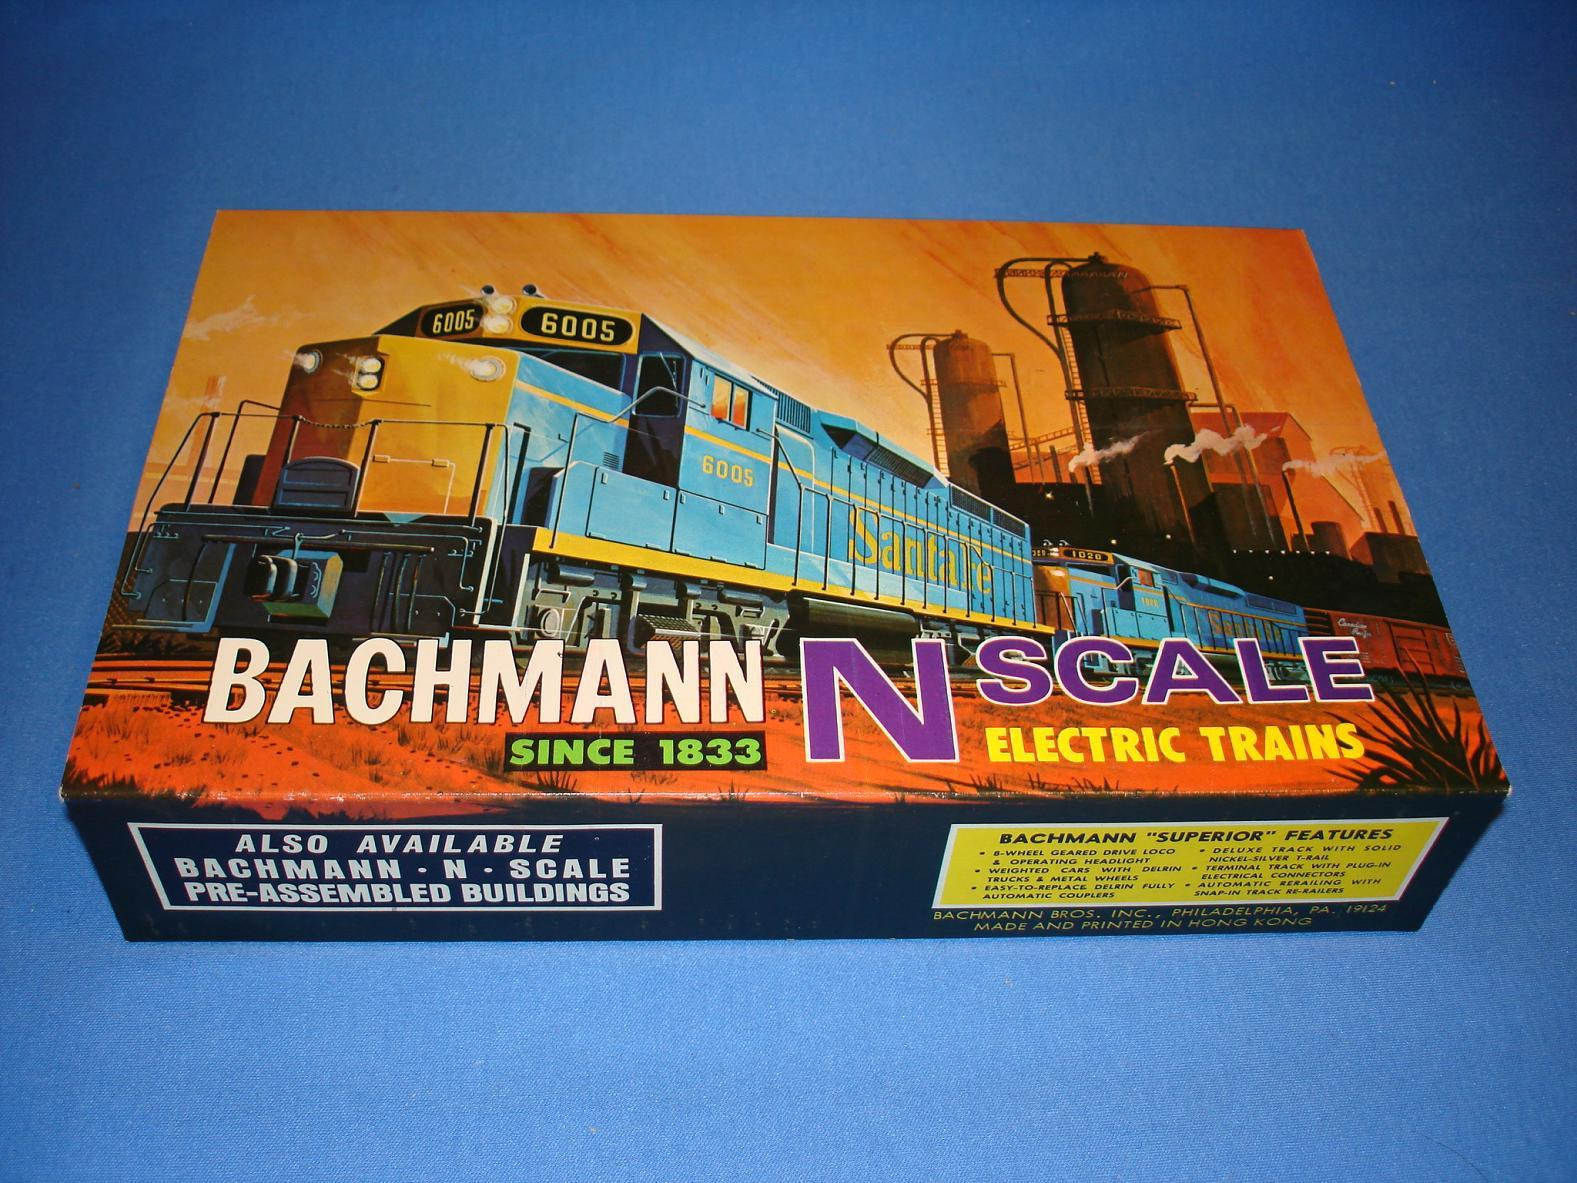 Bachmann N Gauge Train Set 4 Color Sleeve